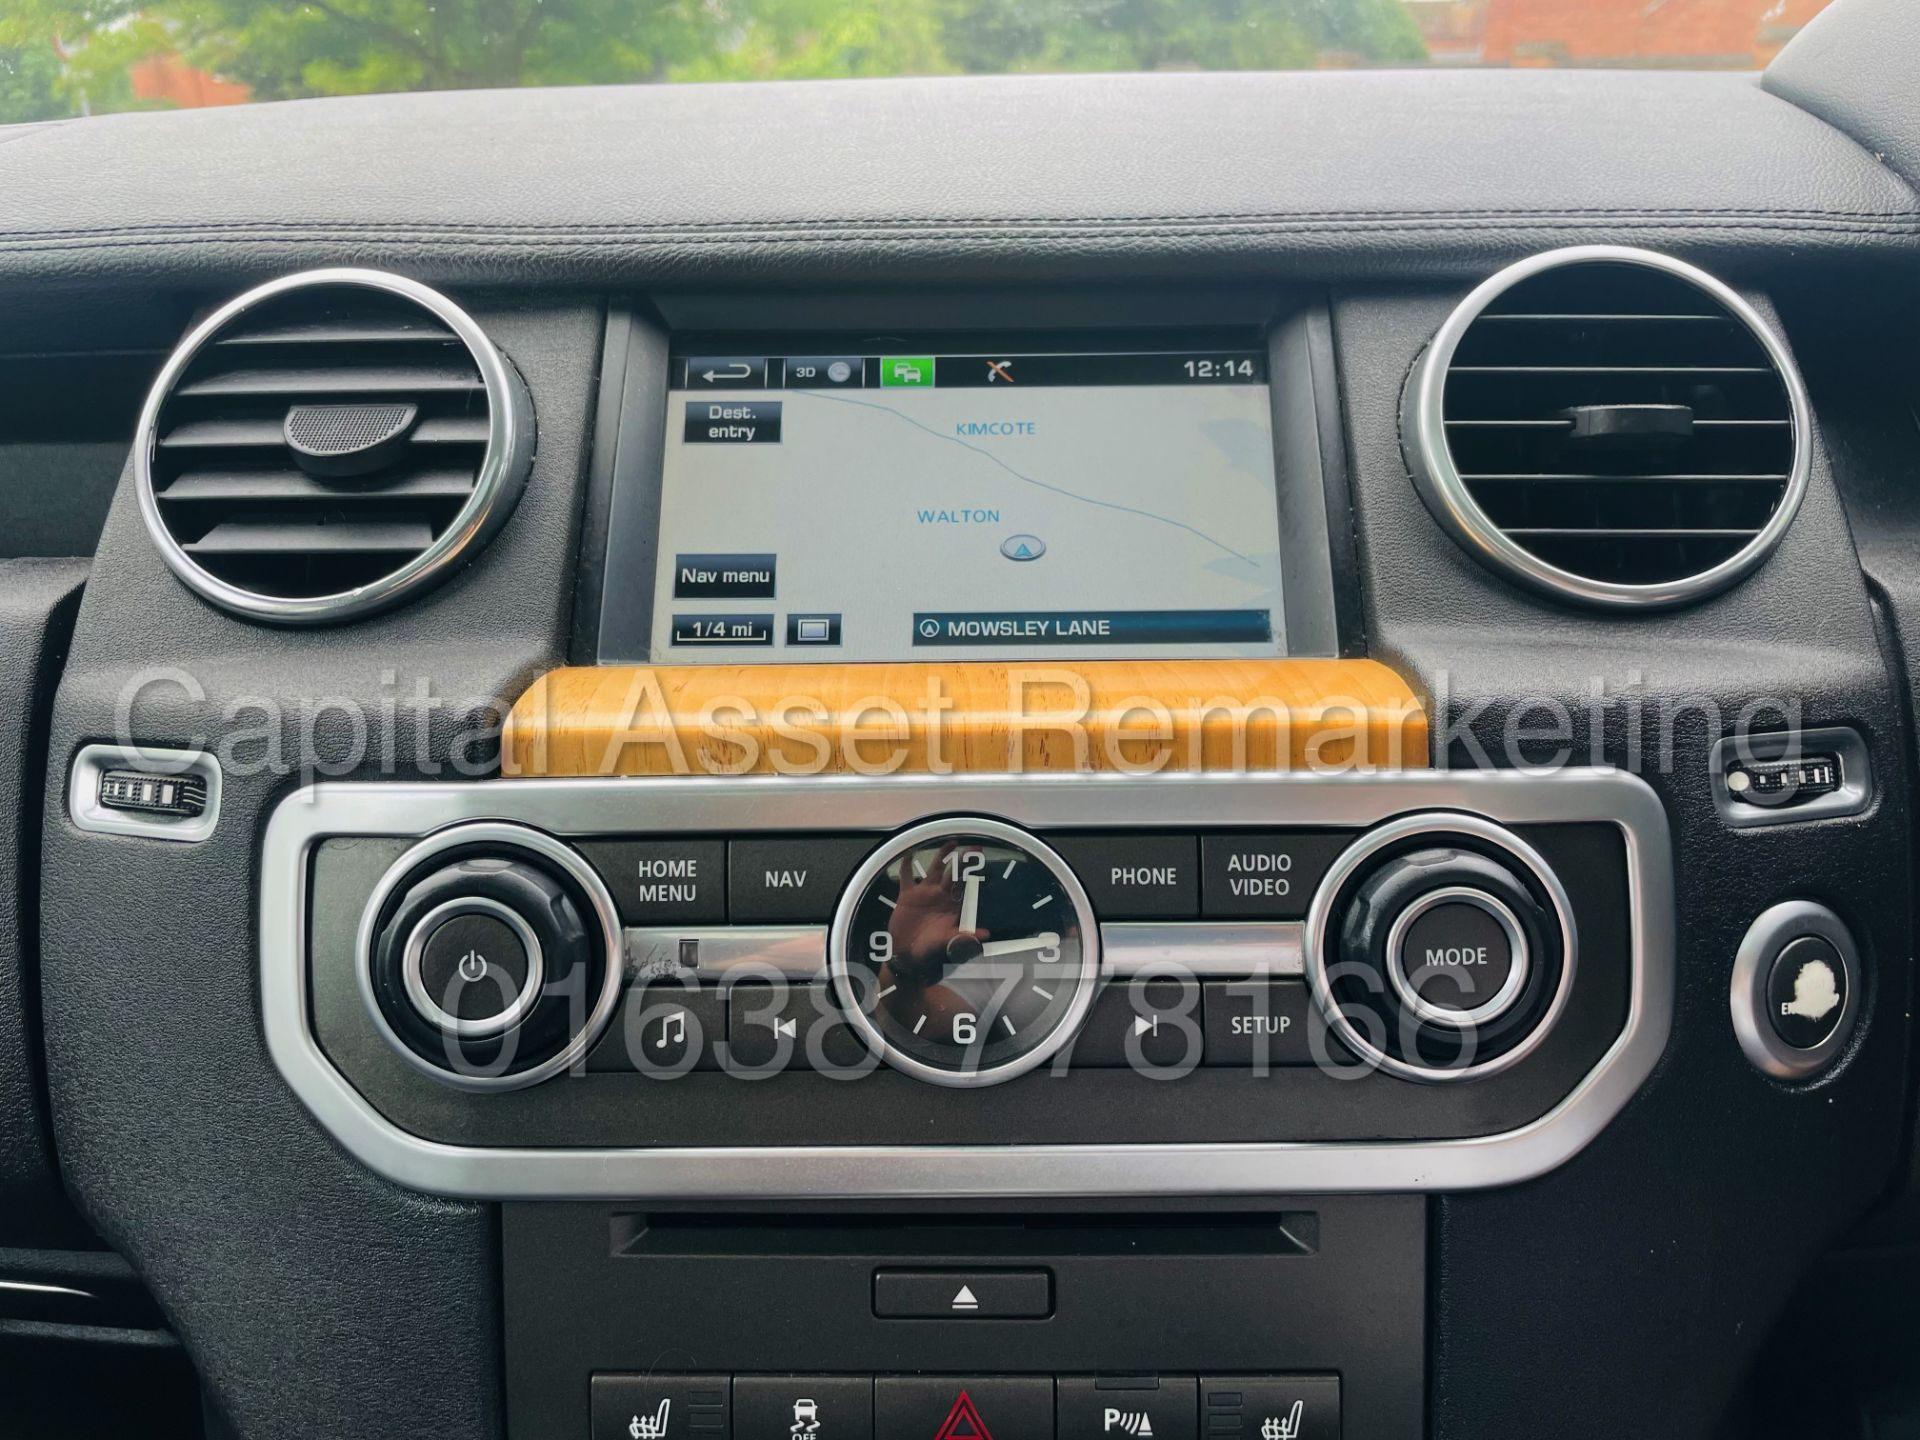 LAND ROVER DISCOVERY 4 *HSE* 7 SEATER SUV (2014 - NEW MODEL) '3.0 SDV6 - 255 BHP - 8 SPEED AUTO' - Image 53 of 61